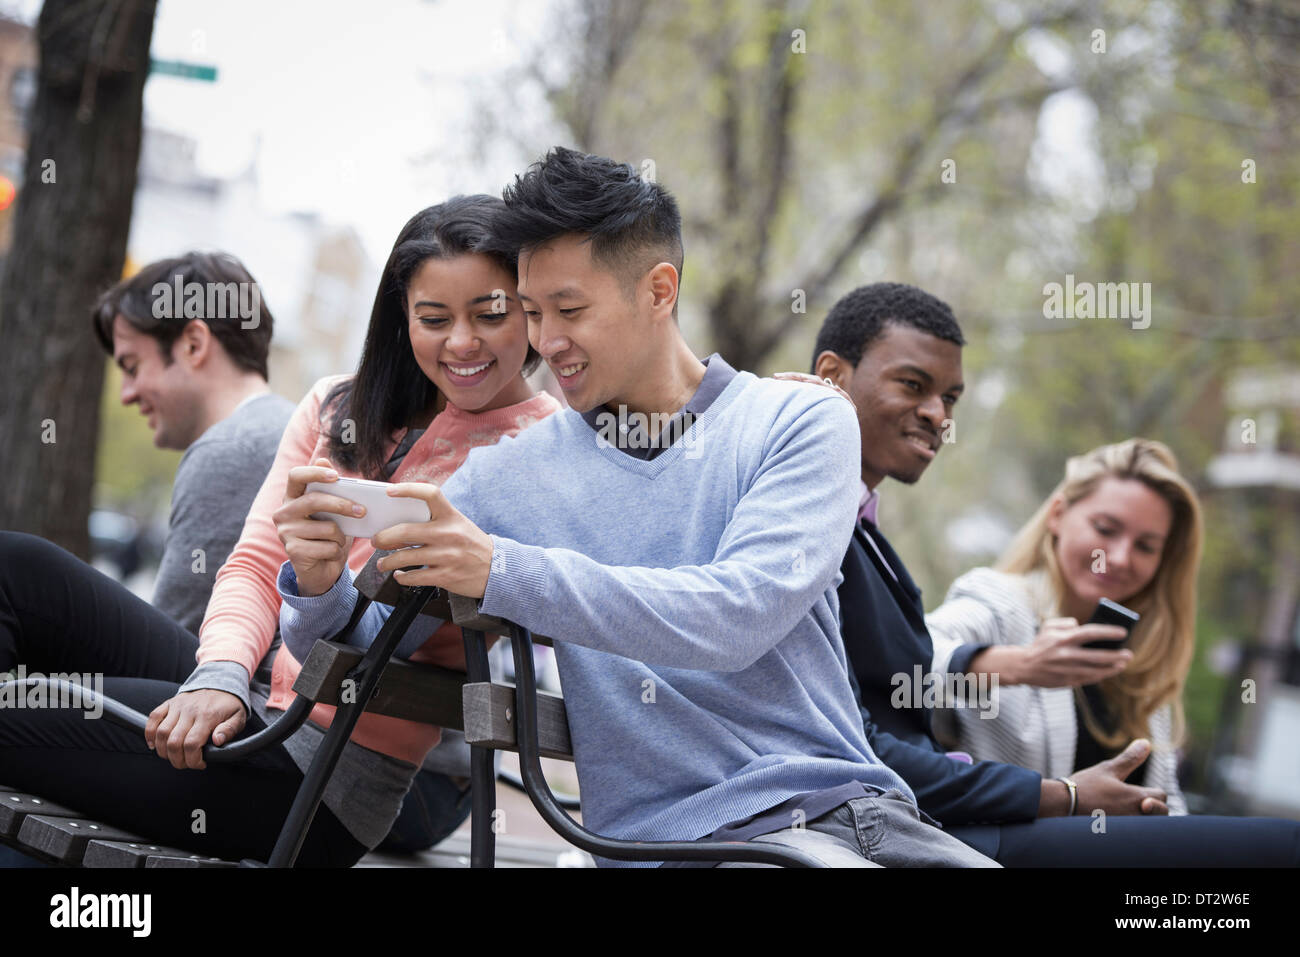 View over city Sitting on a bench A man showing his phone screen to a woman and three other people checking their - Stock Image